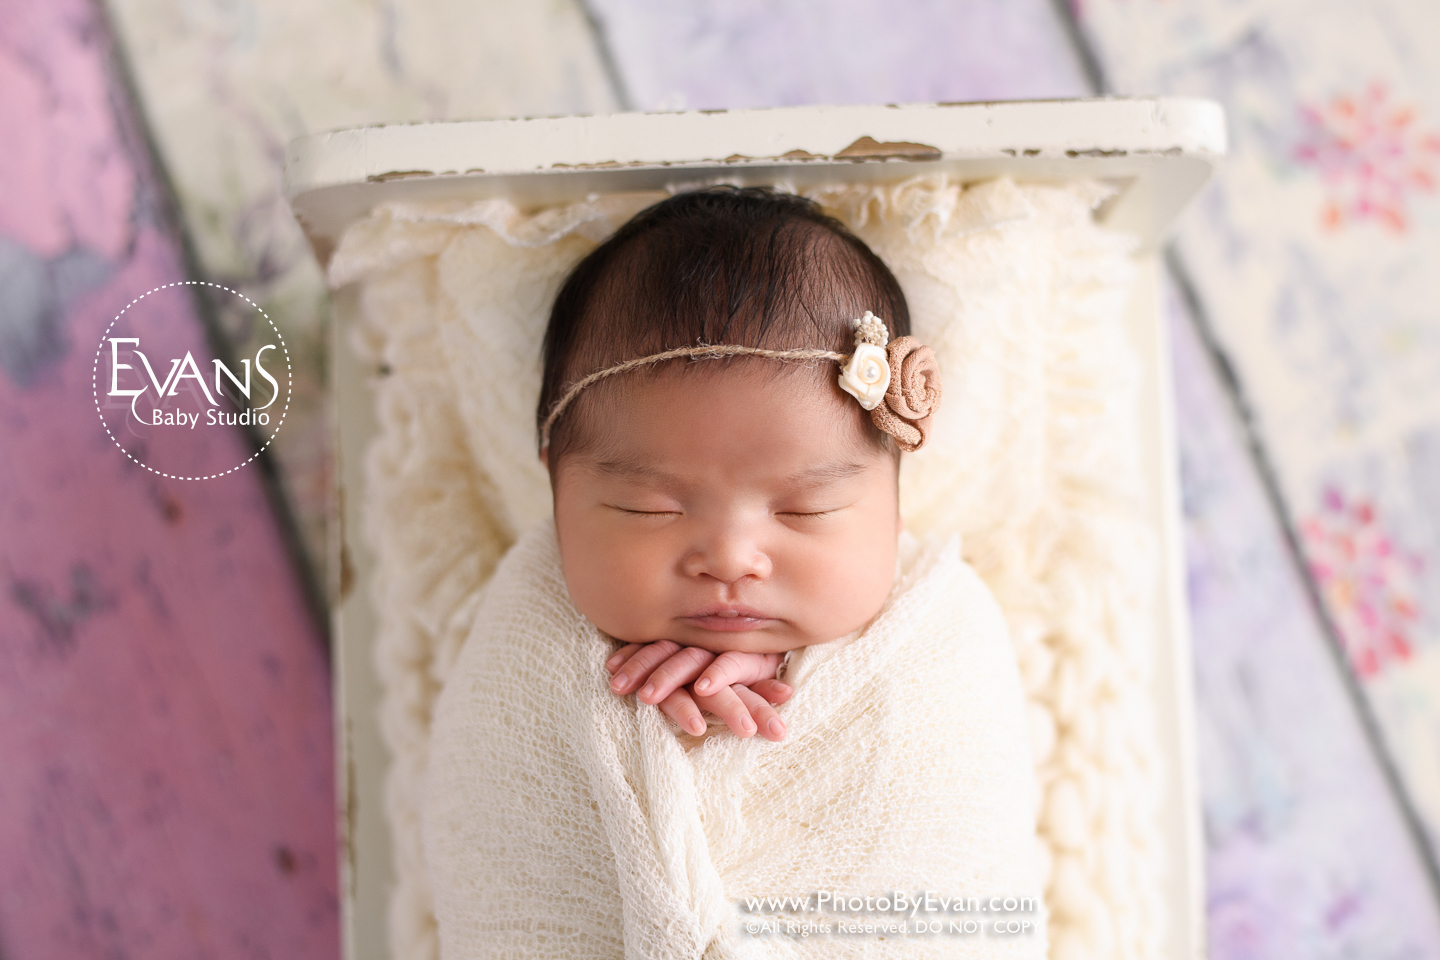 infant photography, newborn photography, newborn hong kong, newborn photography hong kong, baby studio, baby photography, newborn studio, newborn baby photography, baby studio, newborn studio, newborn photo, natural light, 香港嬰兒攝影, 香港初生嬰兒, 初生嬰兒, 初生嬰兒攝影,嬰兒影樓,嬰兒攝影, 初生嬰兒攝影, newborn 攝影, newborn 影樓, newborn, 自然光, newborn PHOTO, newborn拍攝, 初生攝影, 初生嬰兒攝影師, 初生影樓, 初生嬰兒影樓, 香港 newborn 影樓, 香港初生嬰兒攝影,